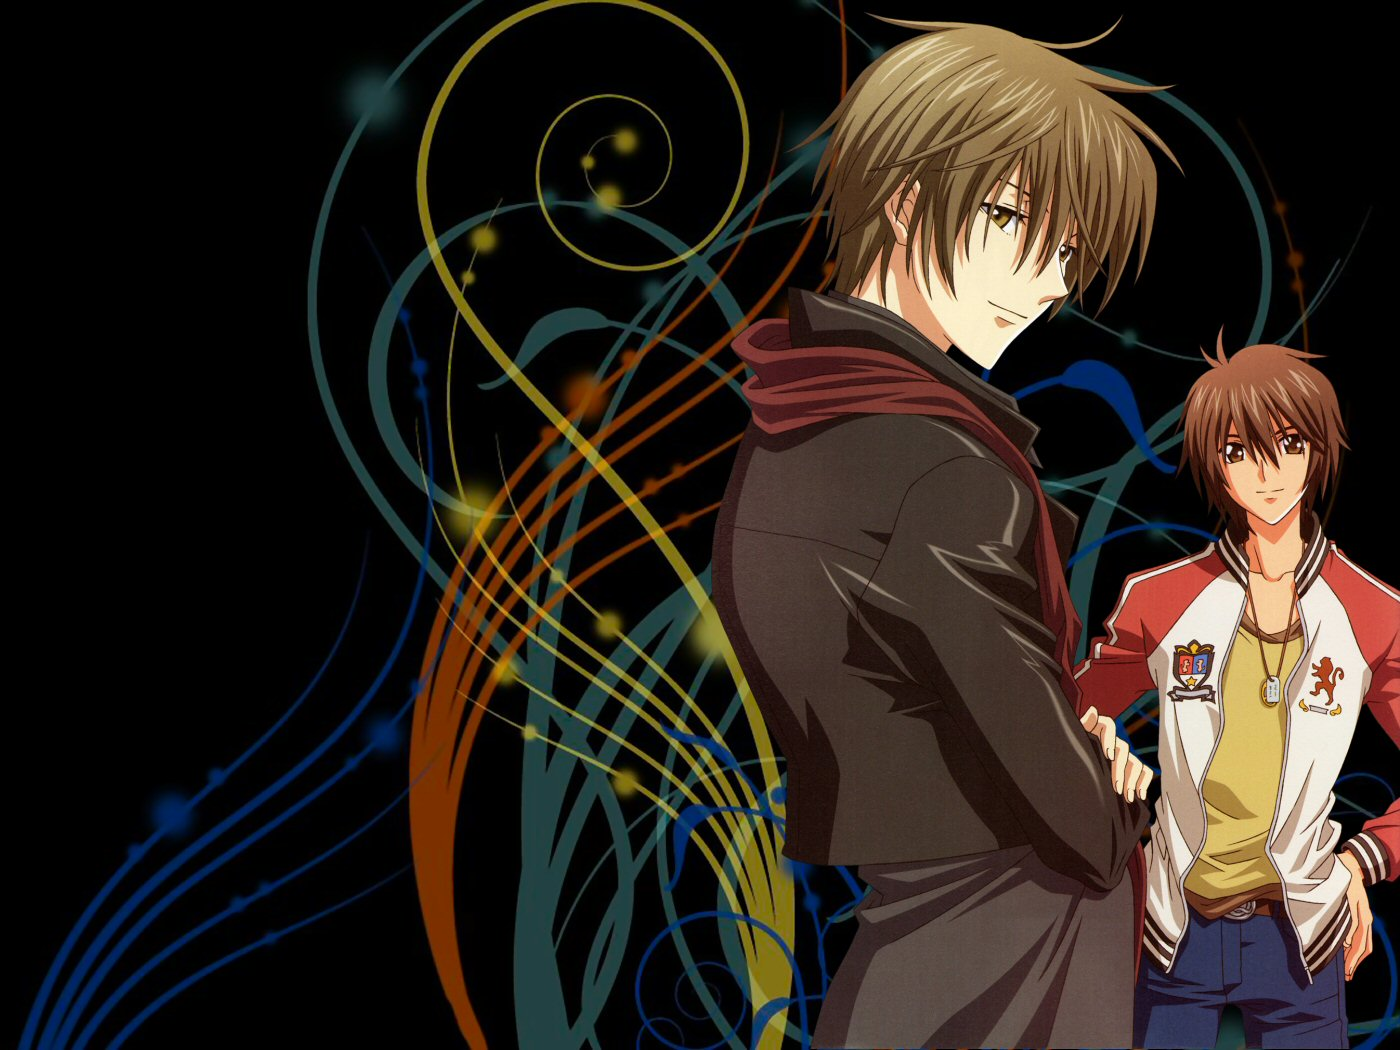 Profile Dp & Cover Photo Wallpapers : Hd-anime-boy-special